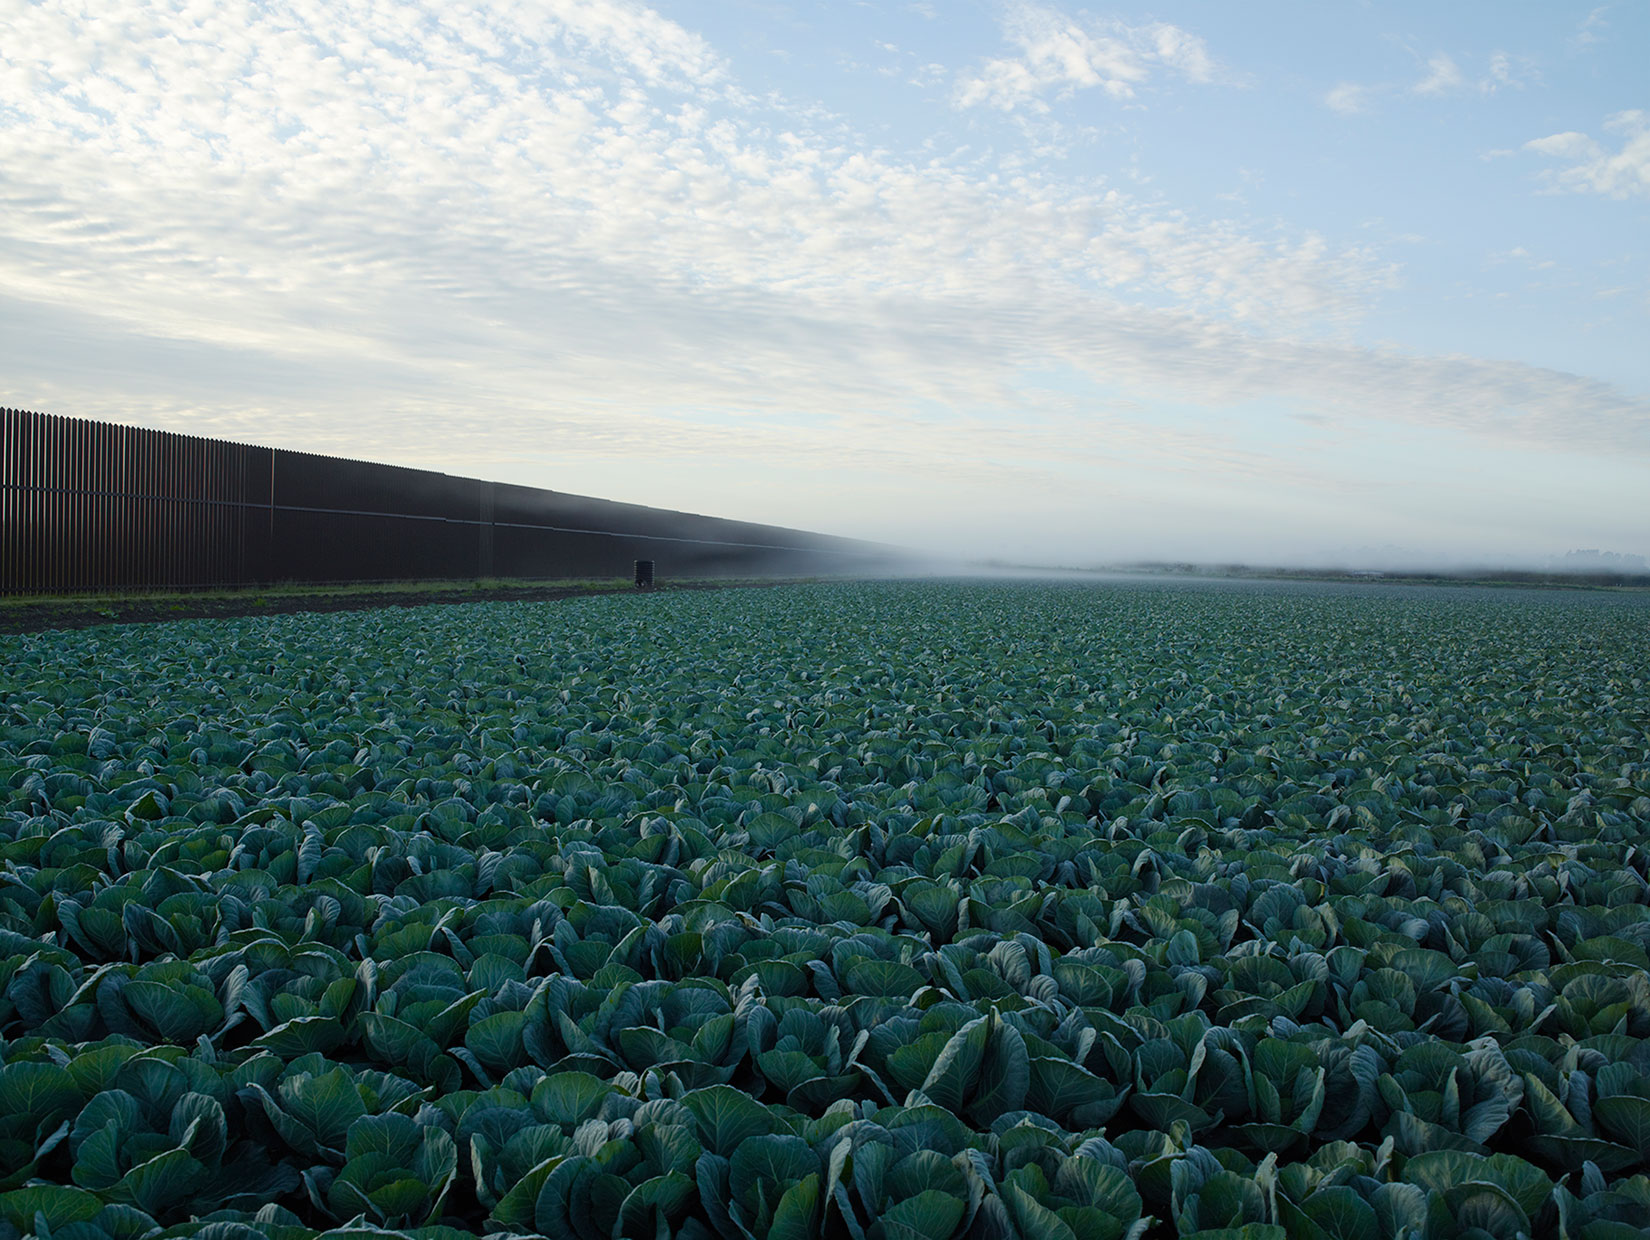 Border Cantos, Amon Carter Museum, Texas: Oct. 15 - Dec. 31                               (Caption: Cabbage crop and wall, Brownsville, Texas, 2015)